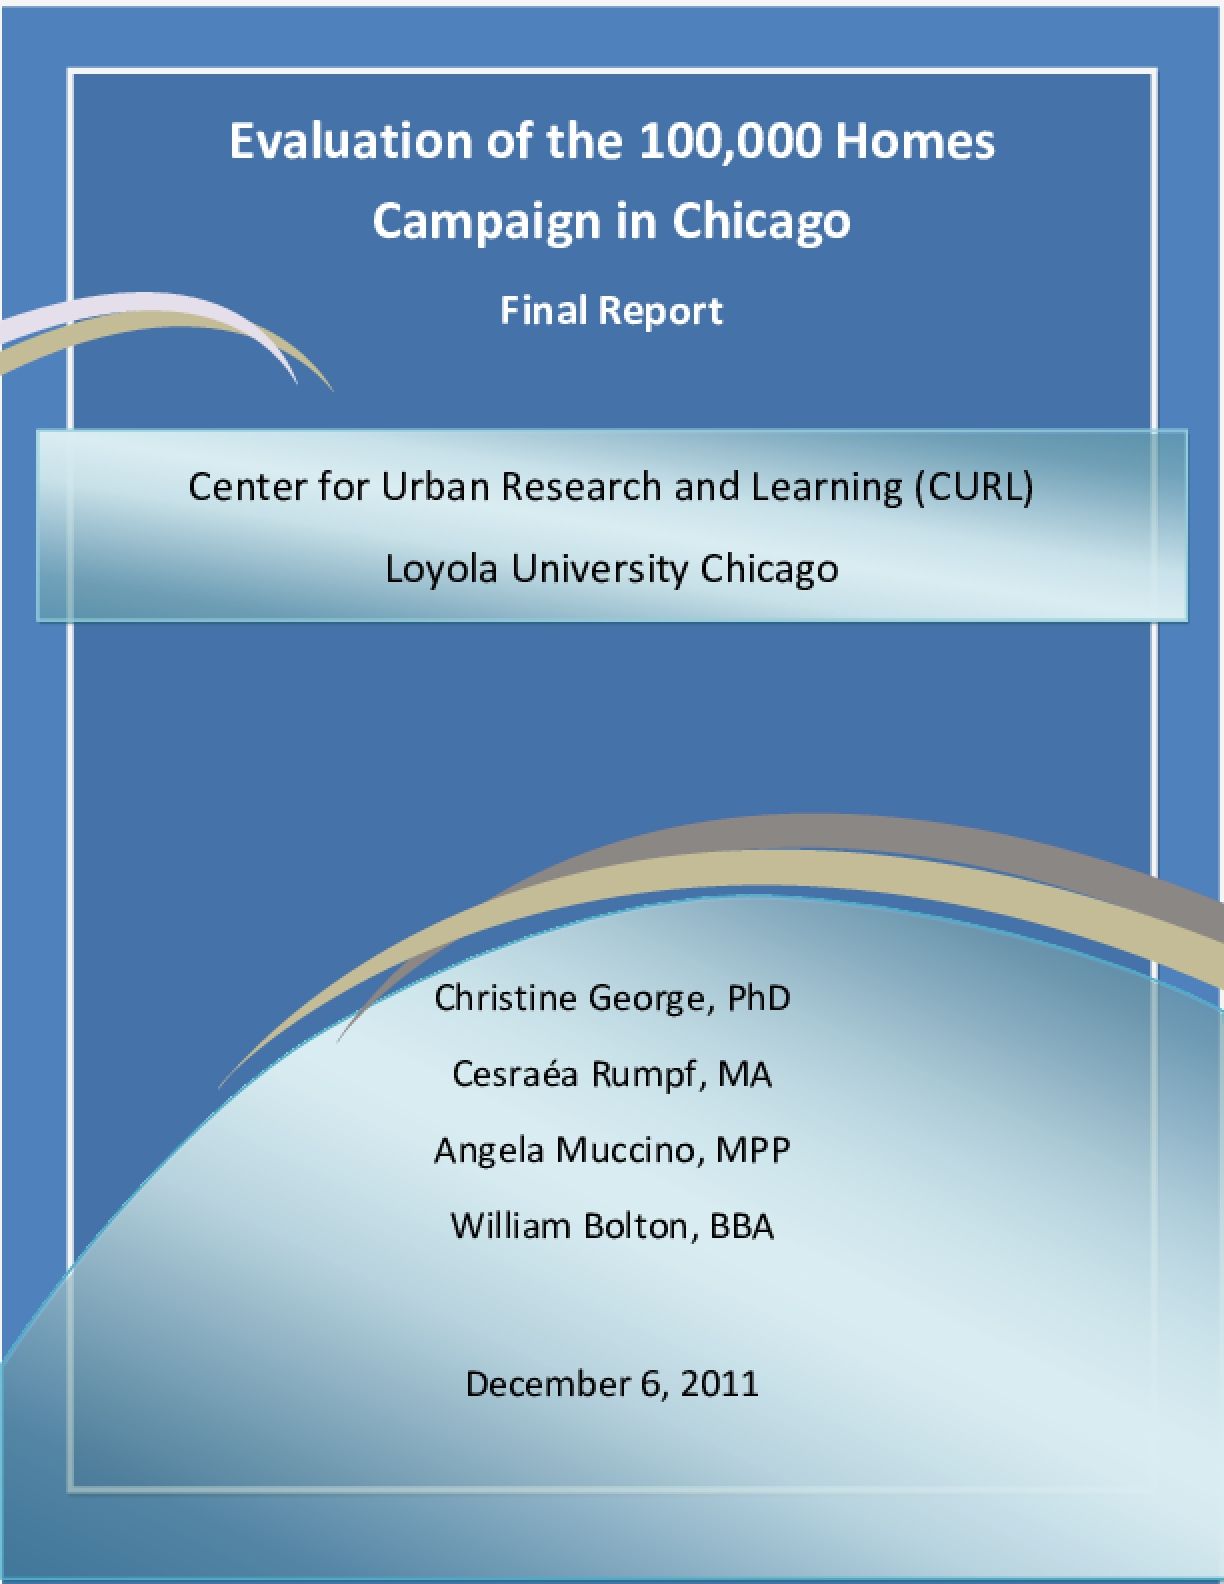 Evaluation of the 100,000 Homes Campaign in Chicago Final Report